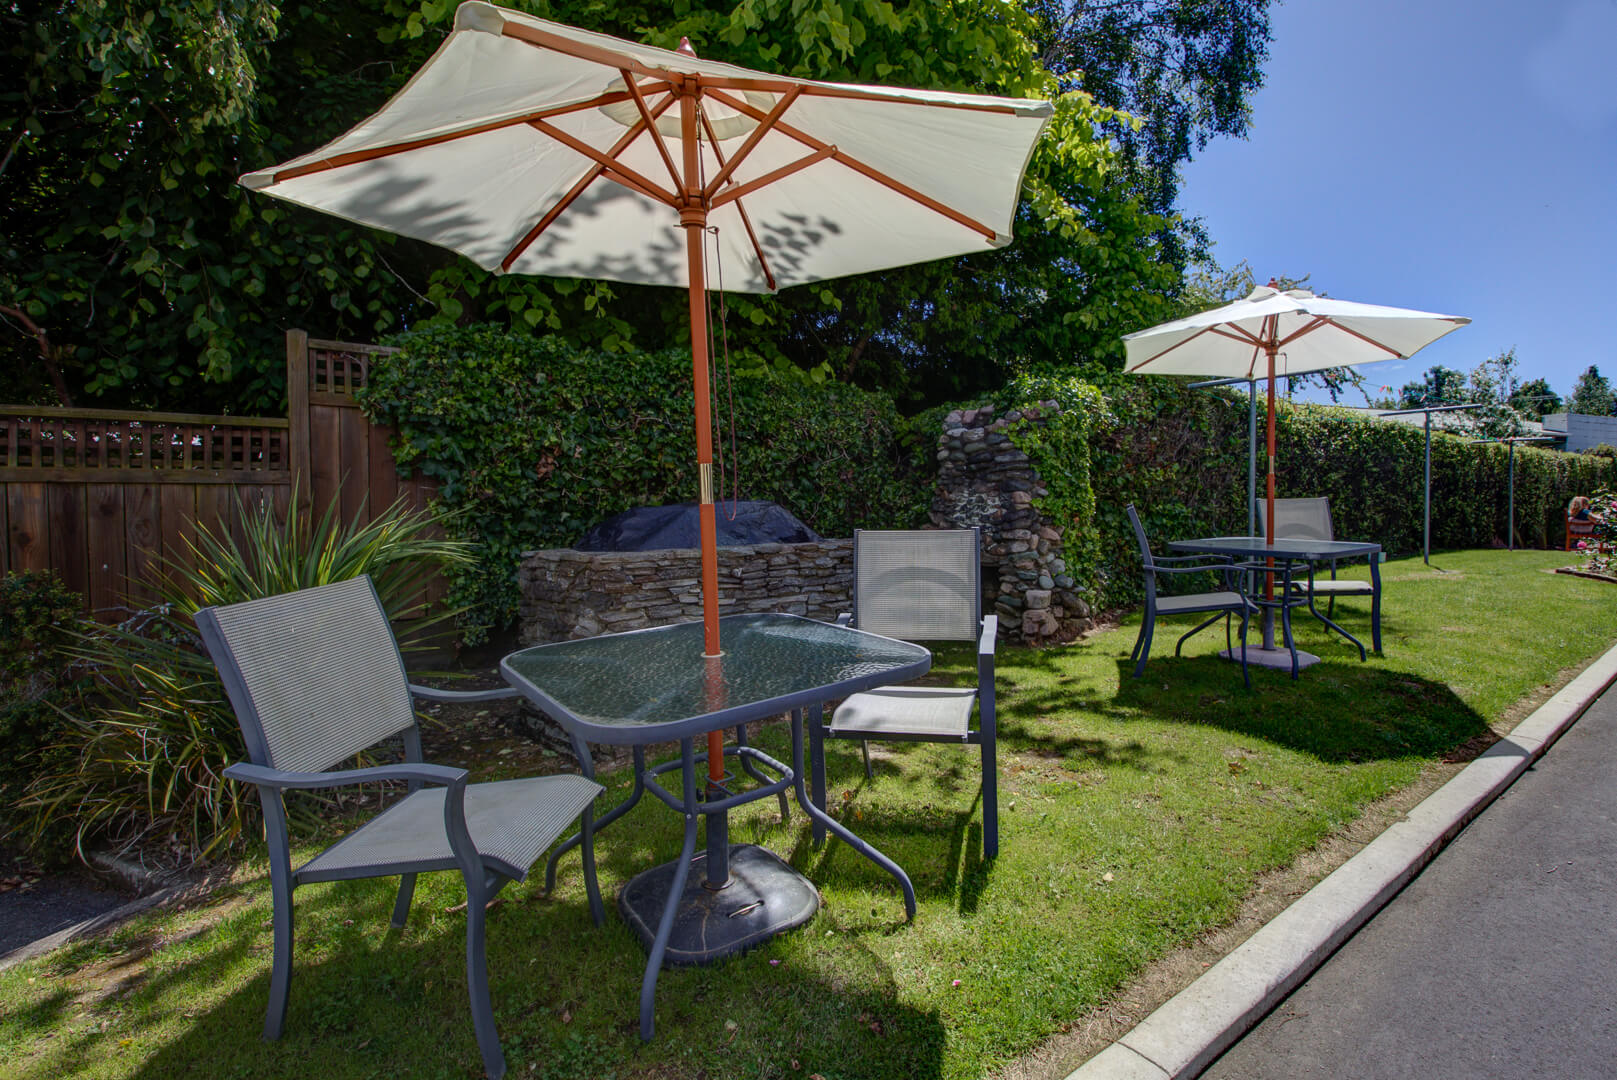 Red Tussock Motel's outdoor grassy area with tables, chairs and umbrellas set up.